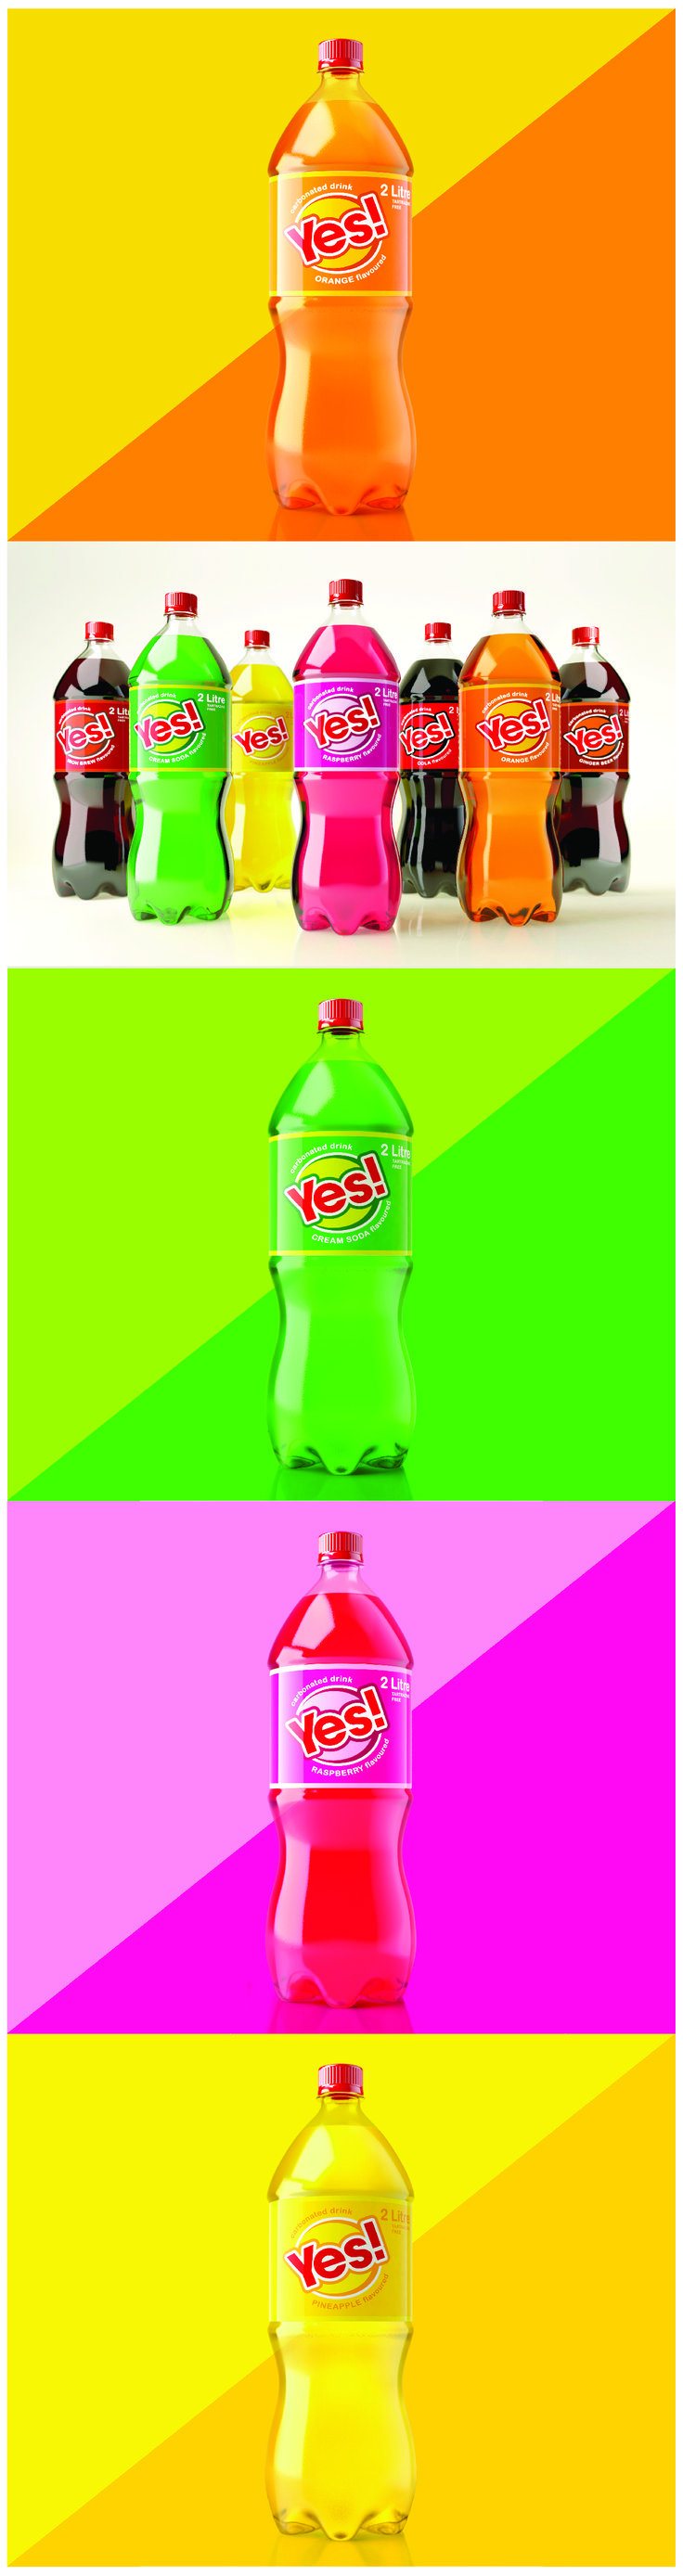 Yes Carbonated Soft Drinks